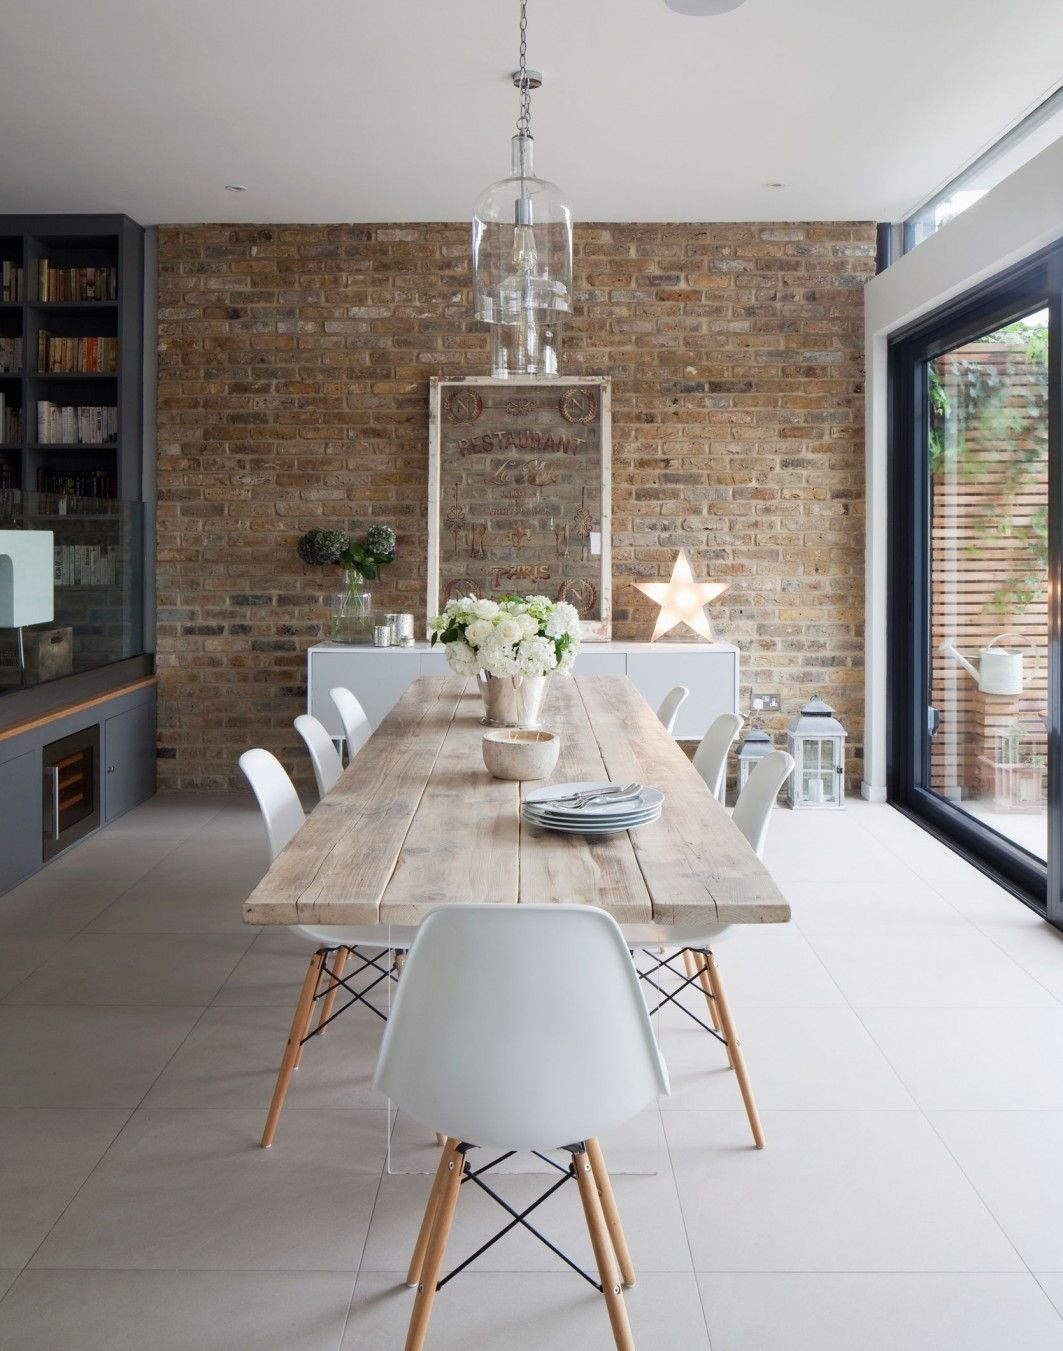 White Scandistyle Dining Room With Exposed Brick Wall  Home Magnificent Dining Room White Inspiration Design